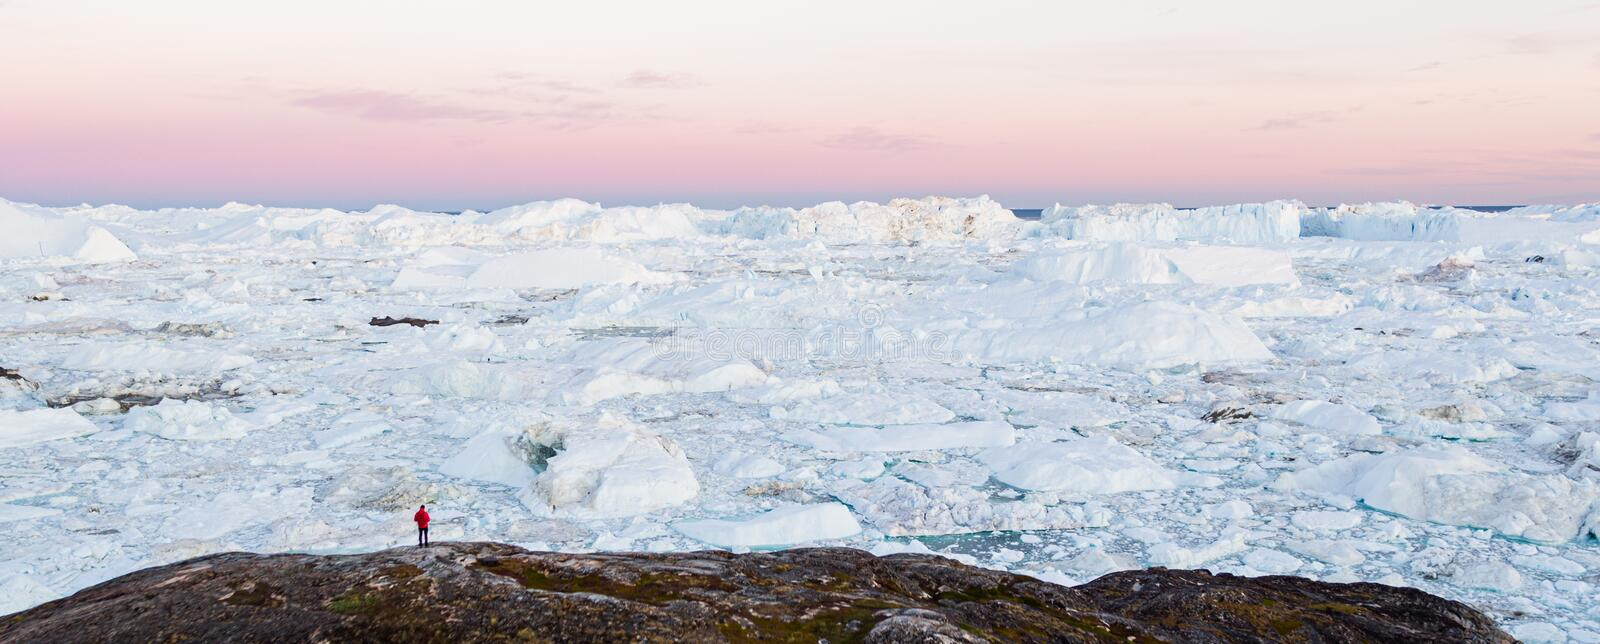 Global Warming and Climate Change concept - Travel adventure in Arctic landscape. Global Warming and Climate Change concept. Travel adventure in Arctic landscape stock photos